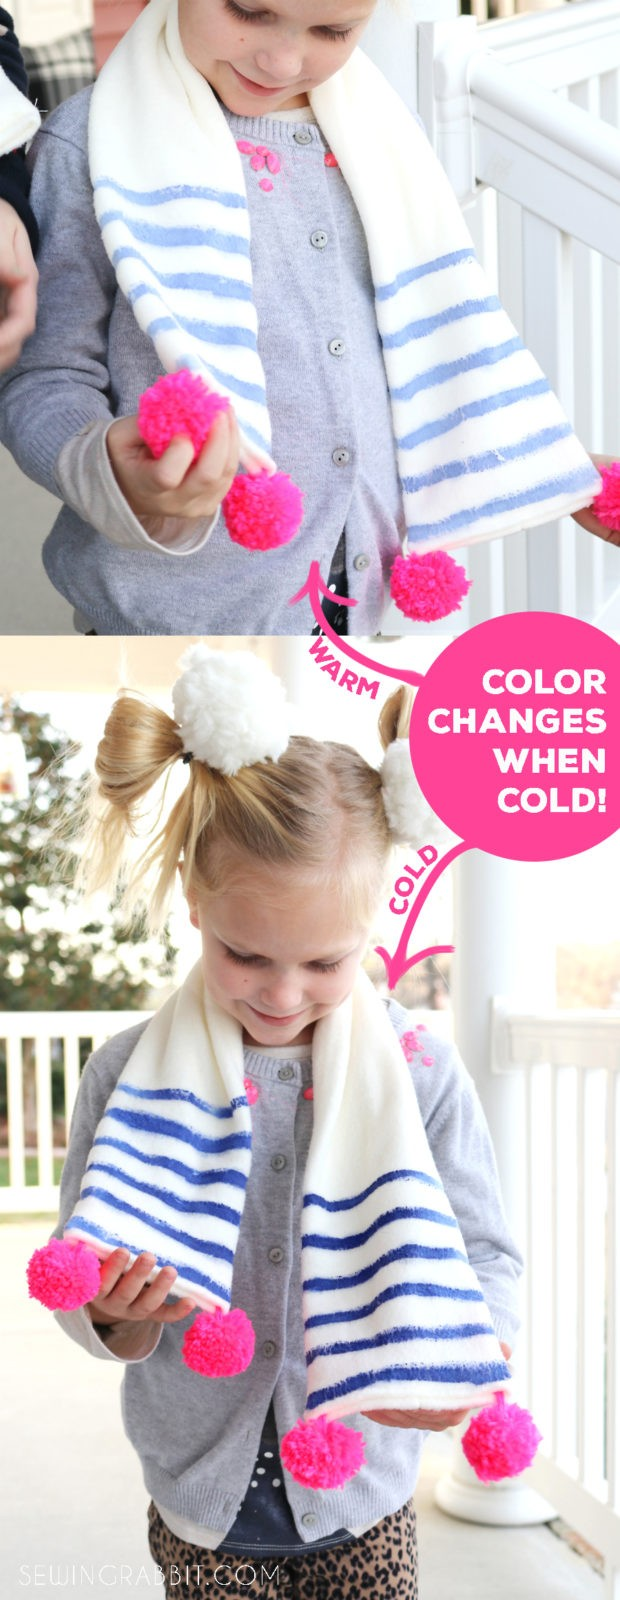 watch the paint color change when the temperature drops below 58° !!!